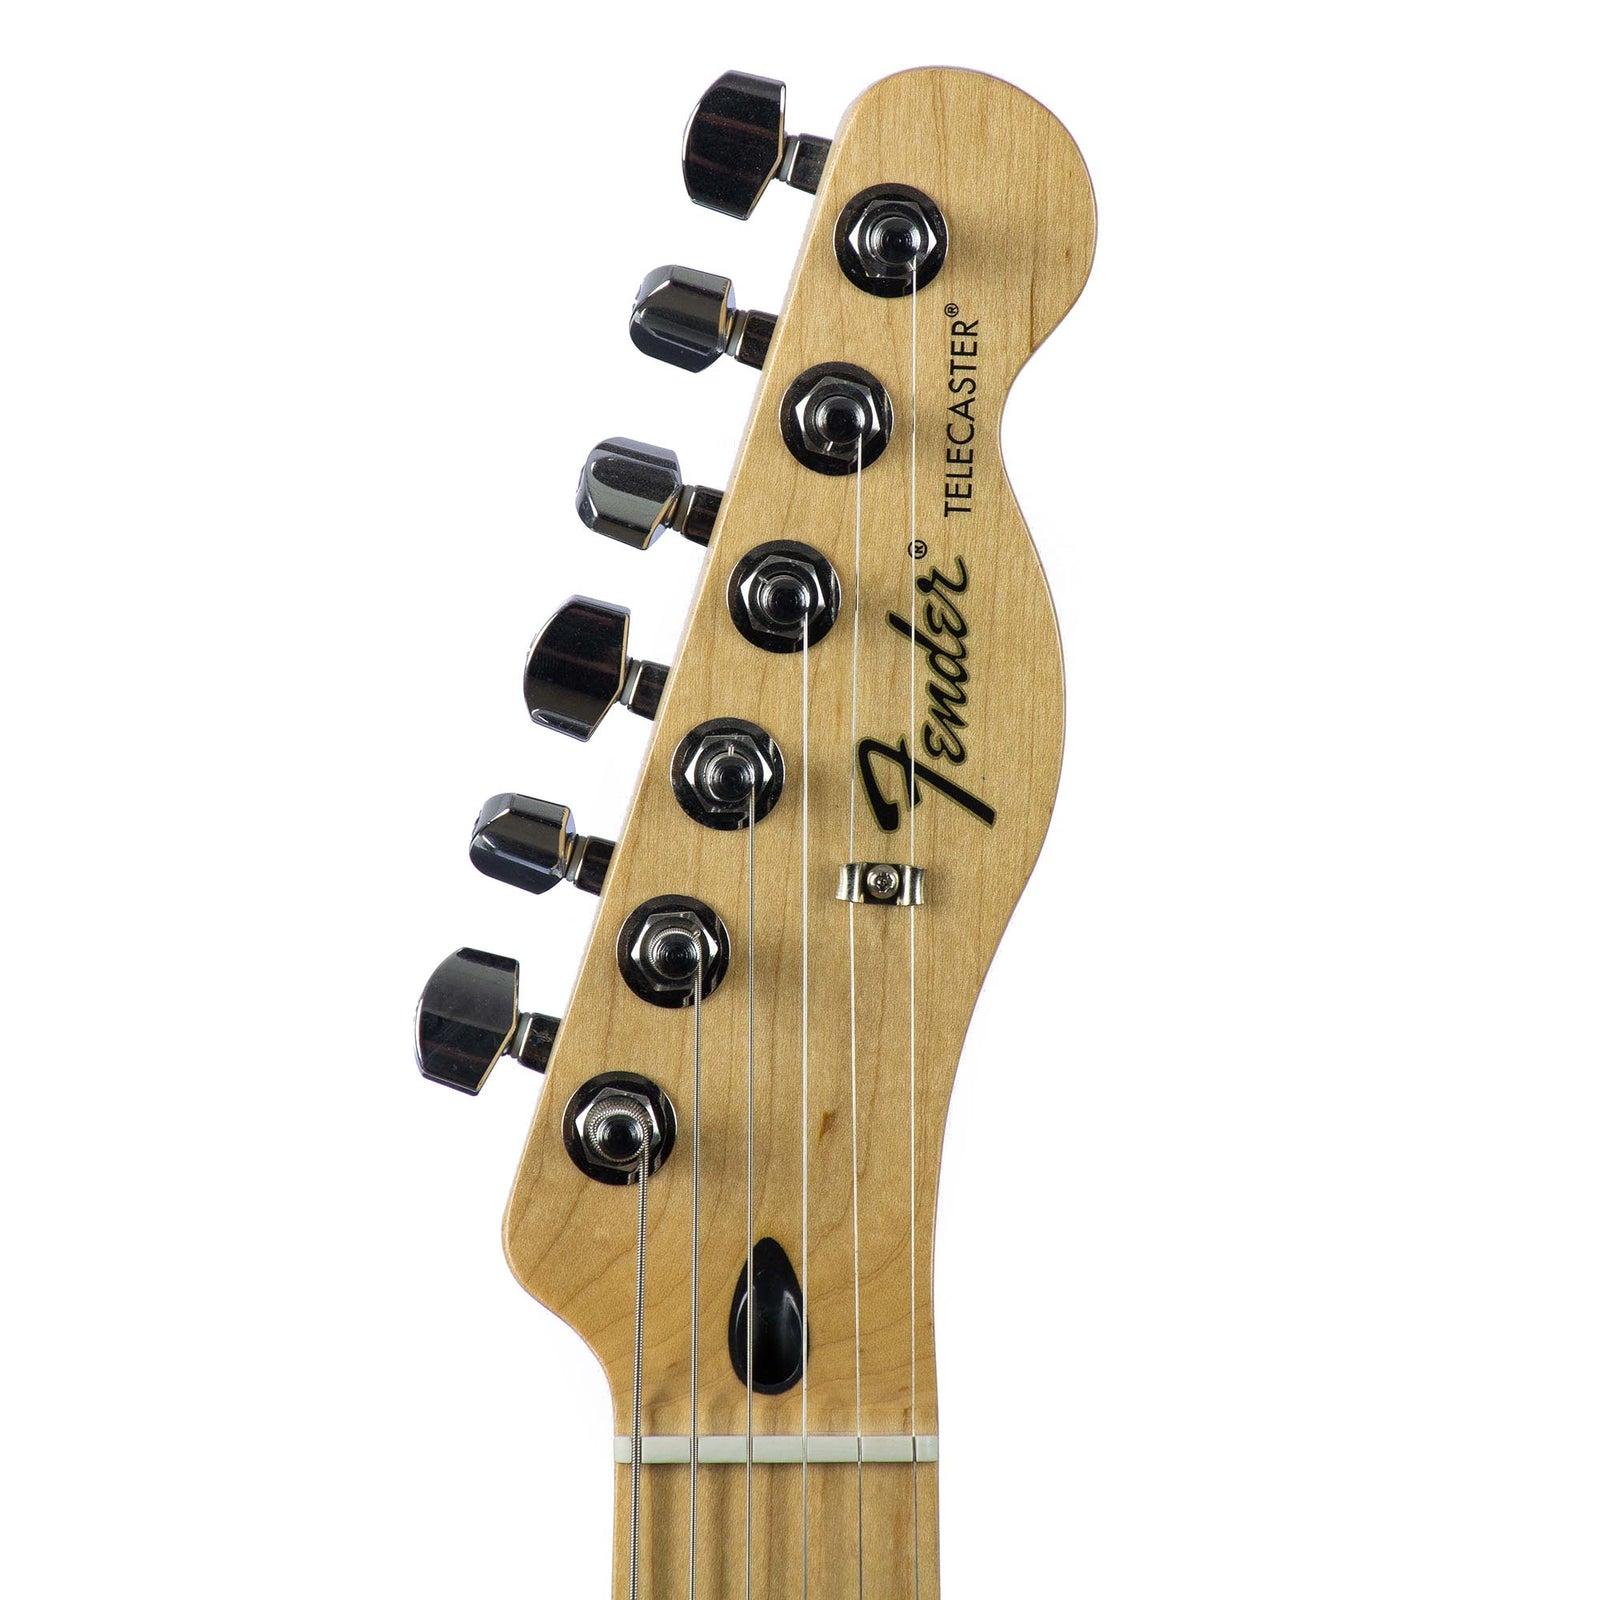 Fender Standard Telecaster with Greg Koch Fishman Fluence Pick-ups Sweepstakes